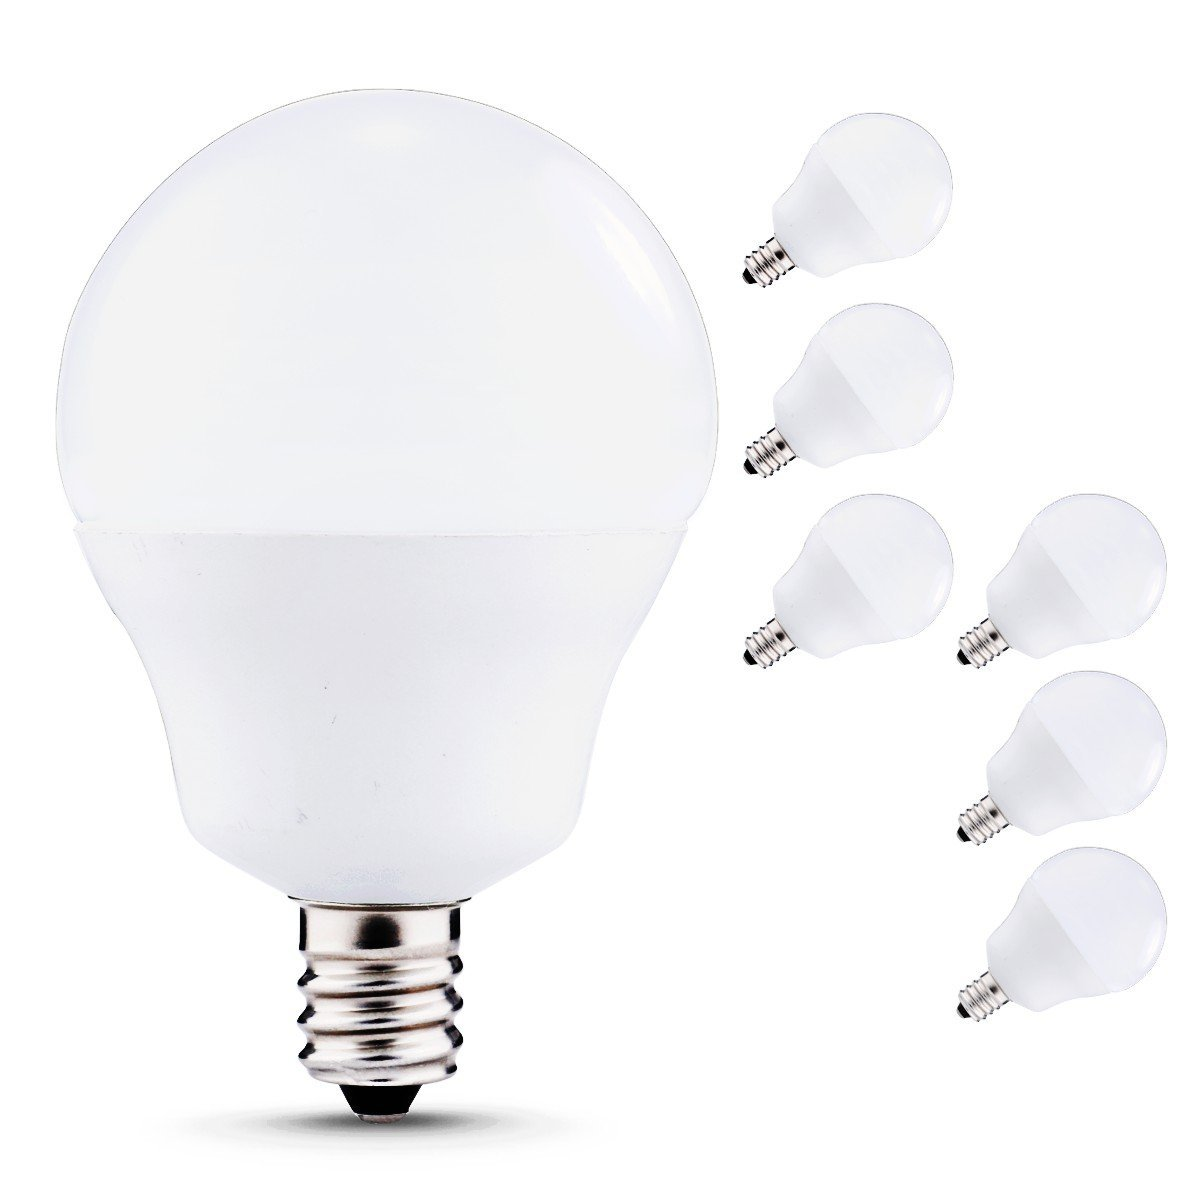 Replacement Globe Clear Bulbs Lights Essentials Room